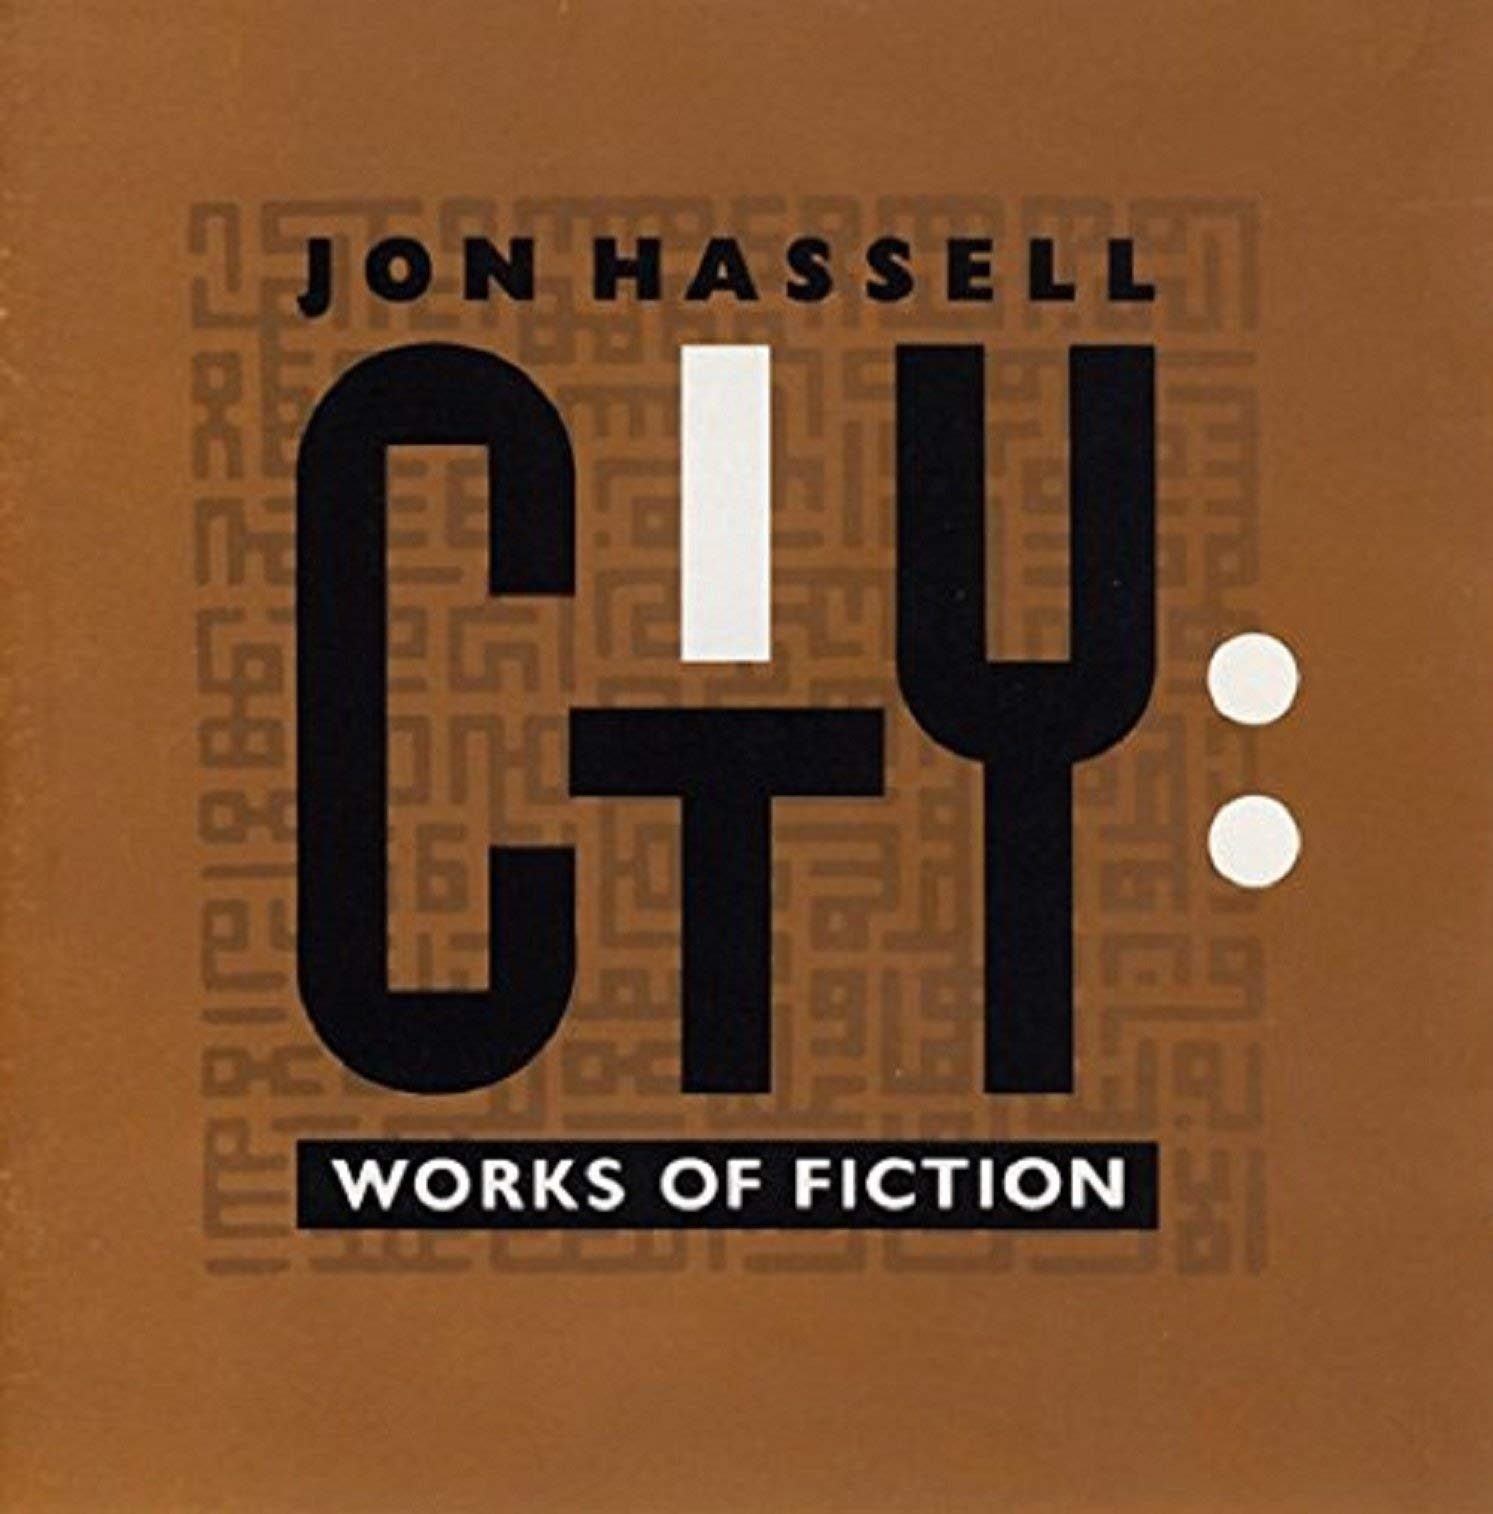 City: Works of Fiction